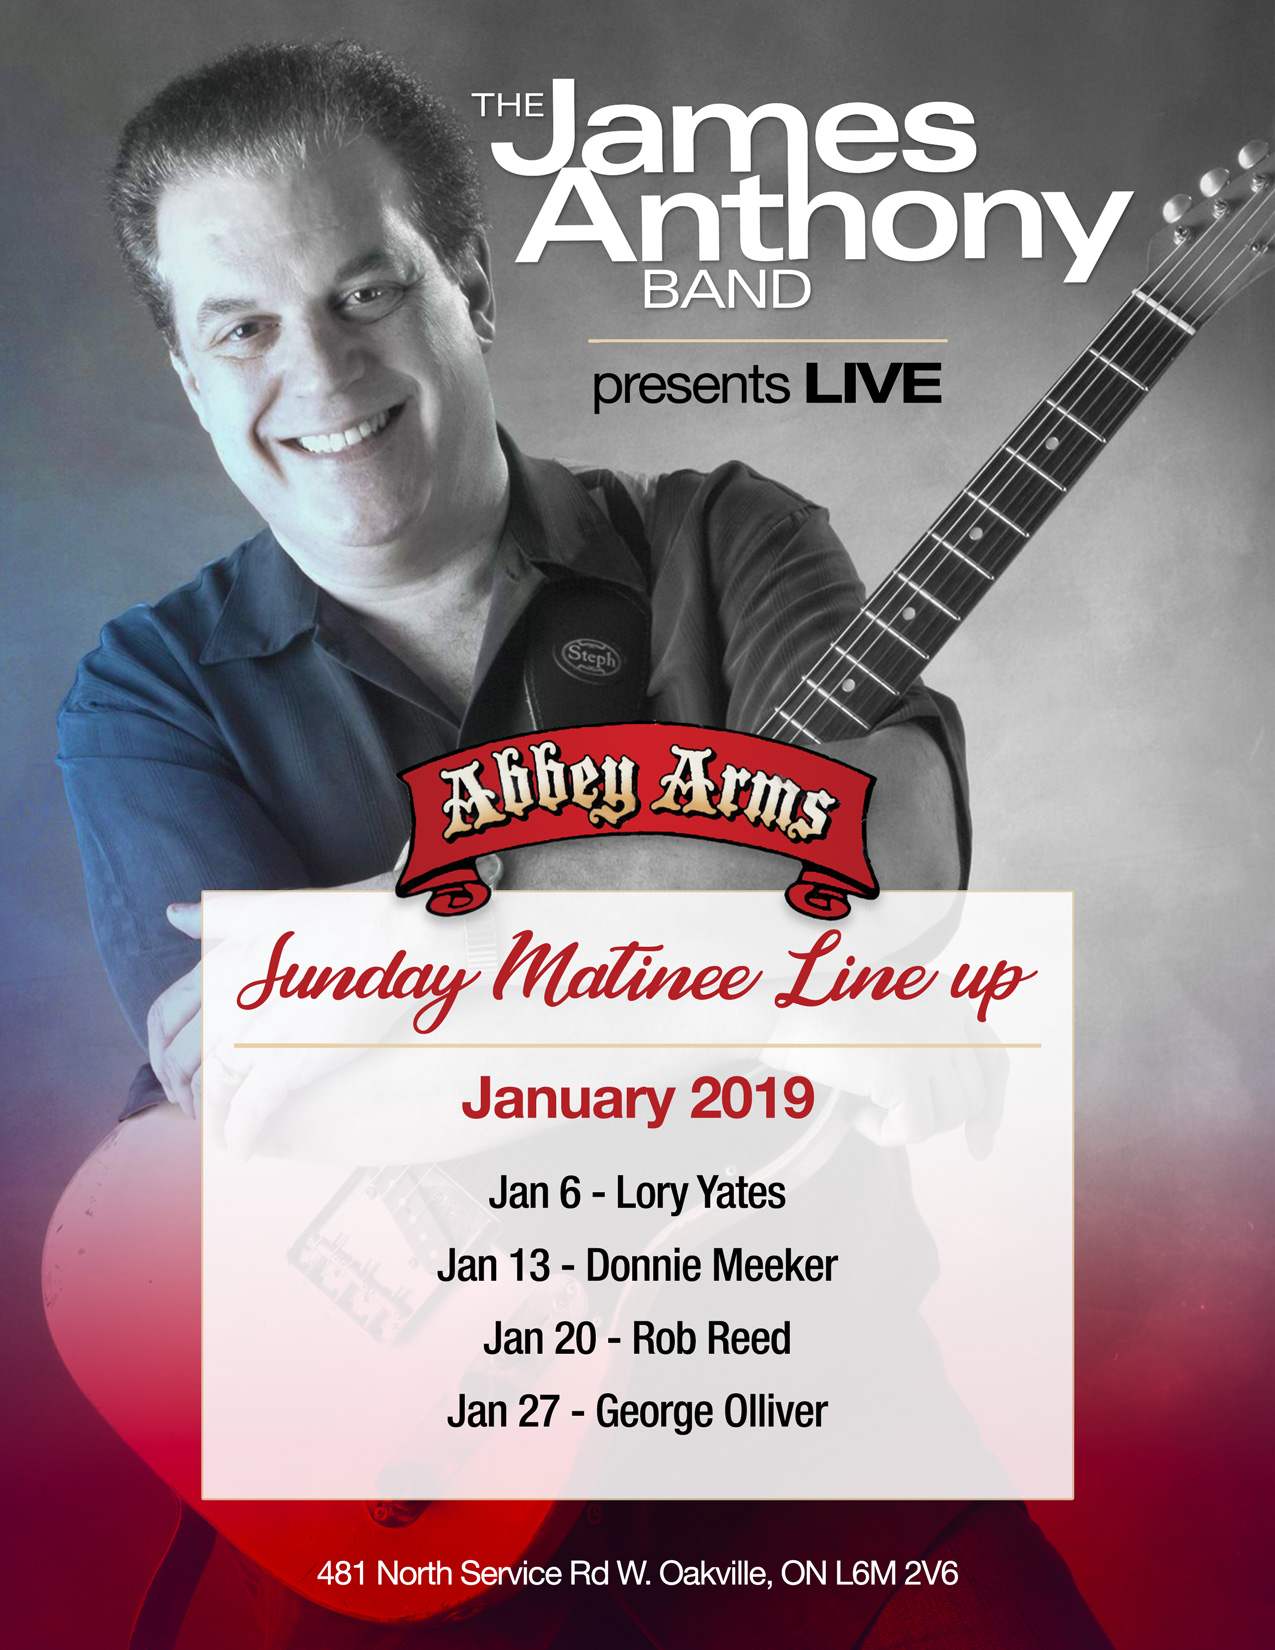 The James Anthony Band